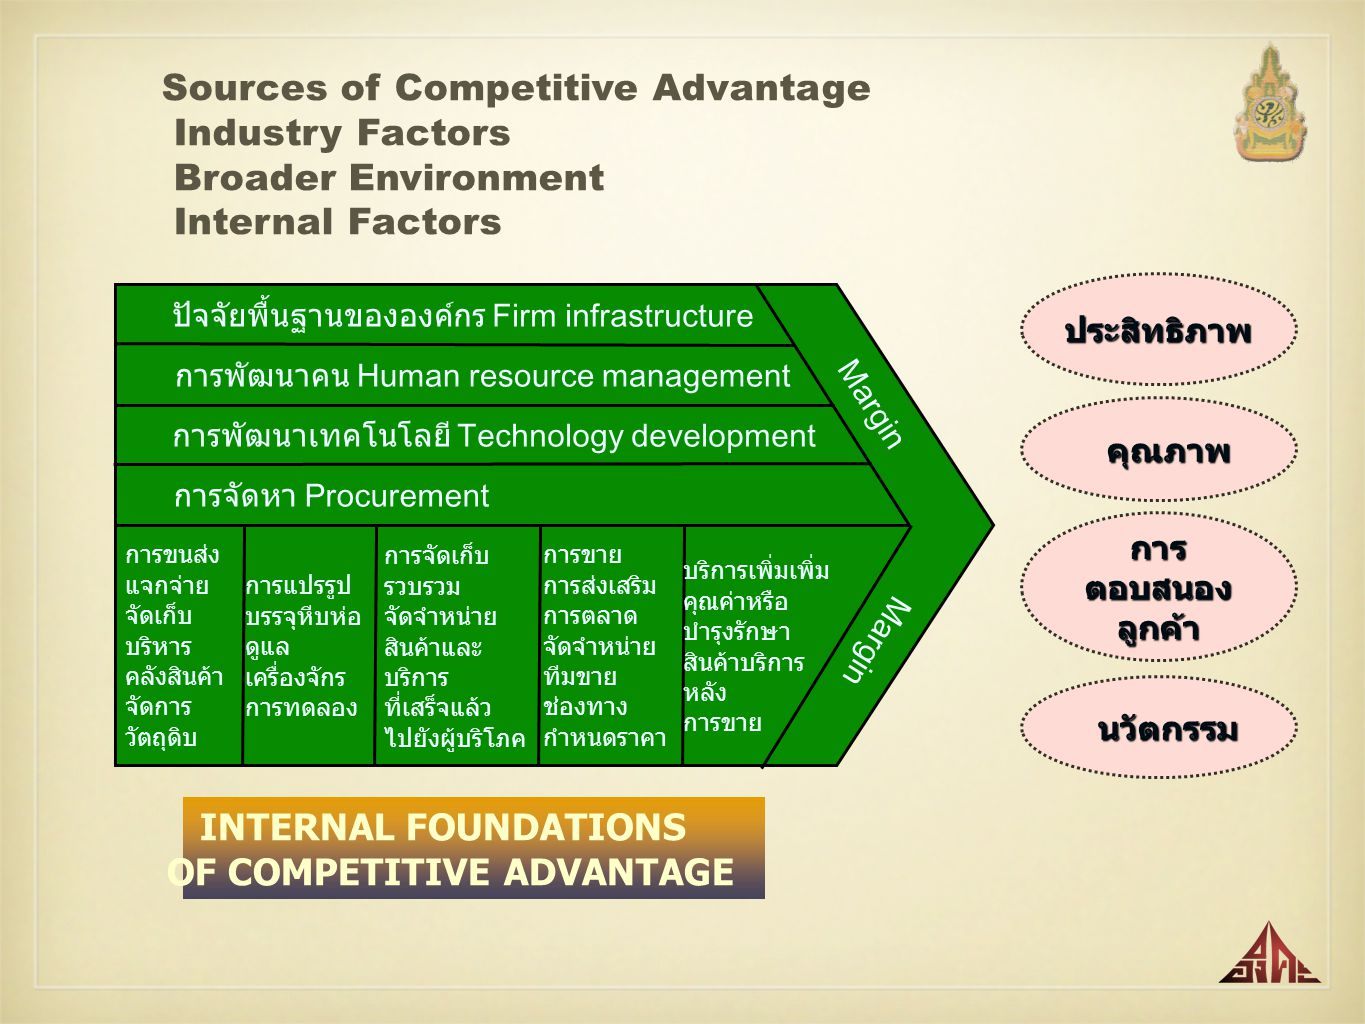 OF COMPETITIVE ADVANTAGE